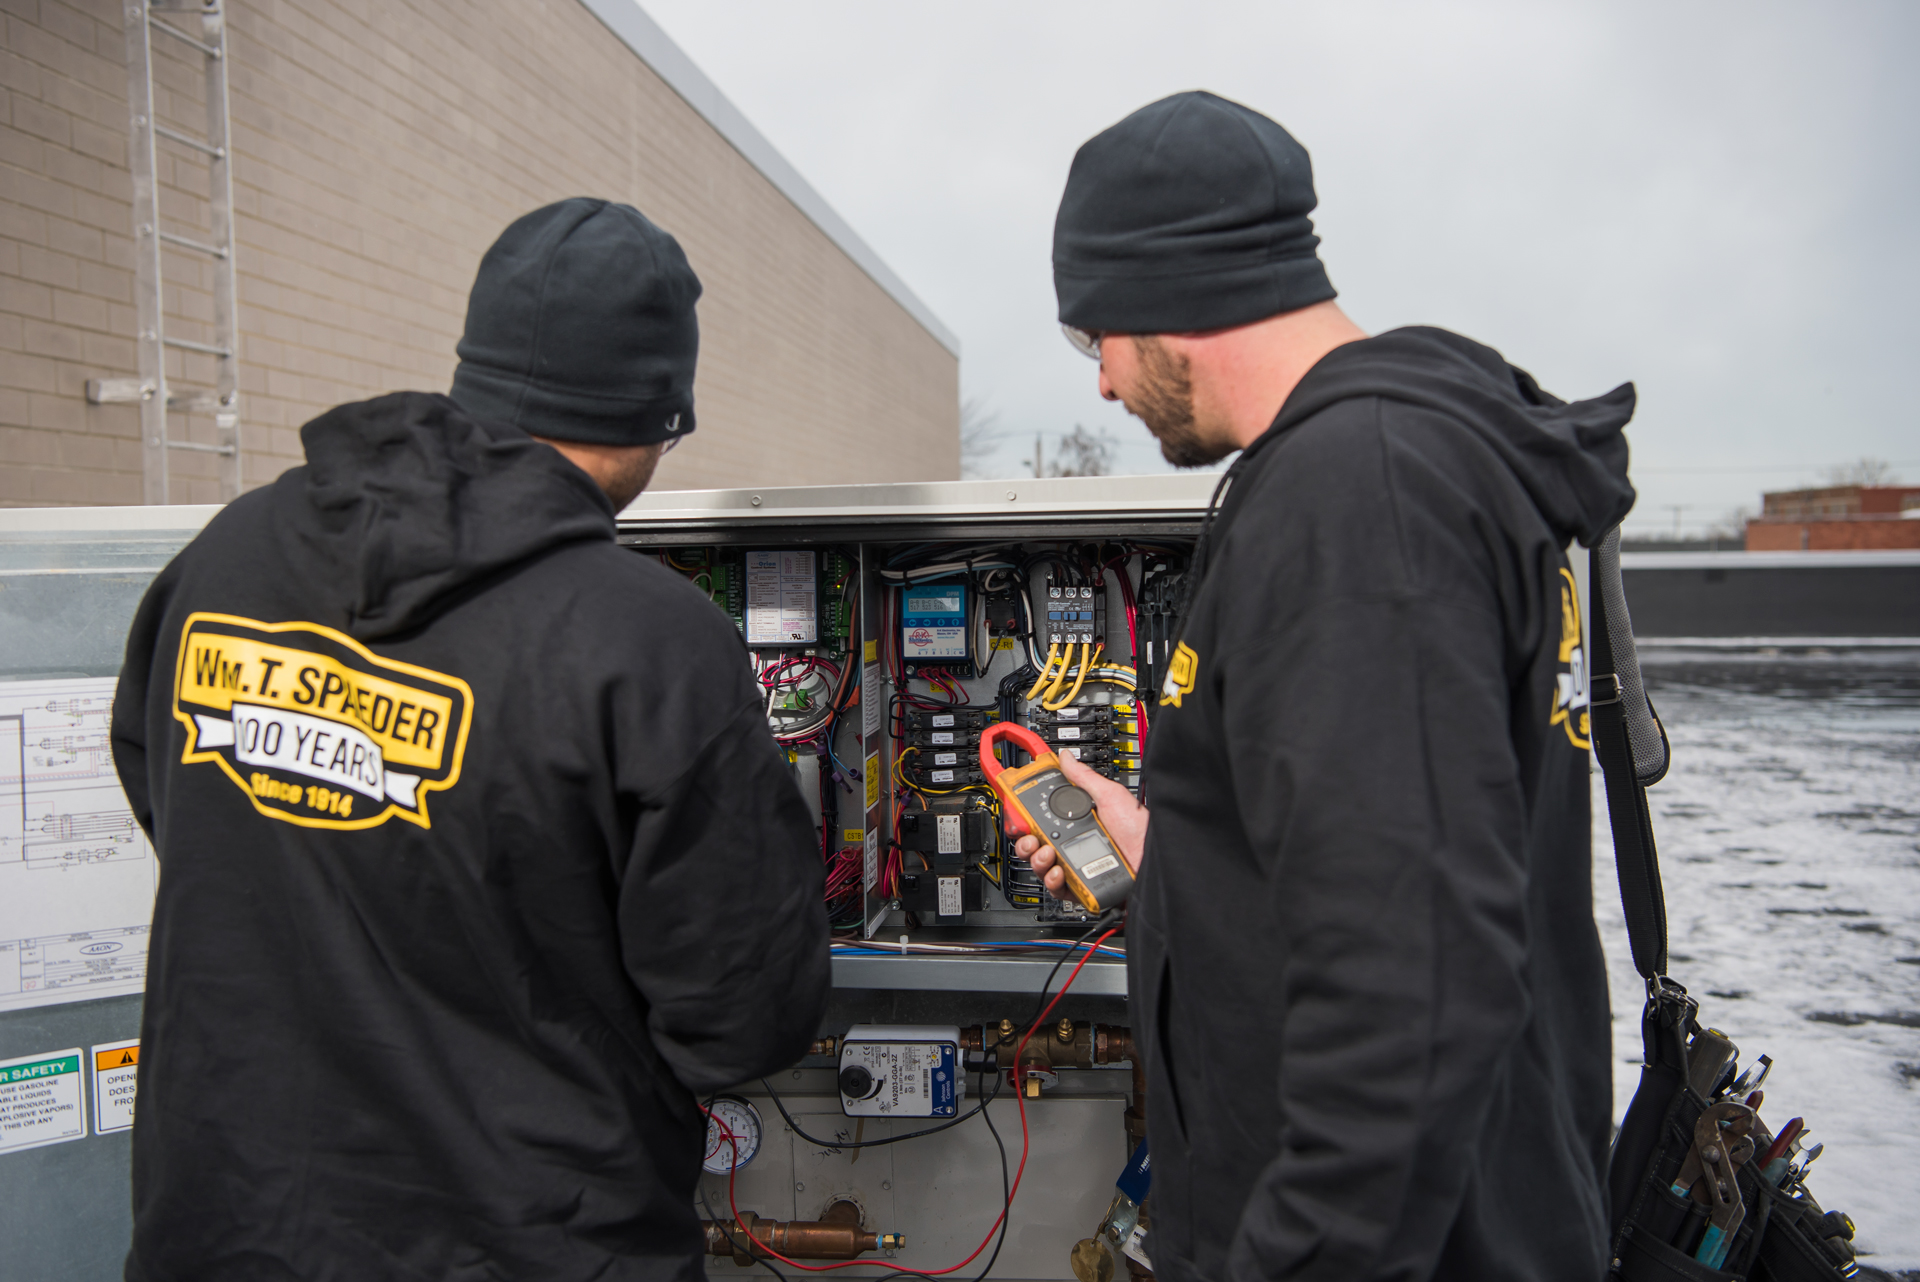 Spaeder technicians examining an air handling unit as part of an HVAC inspection.